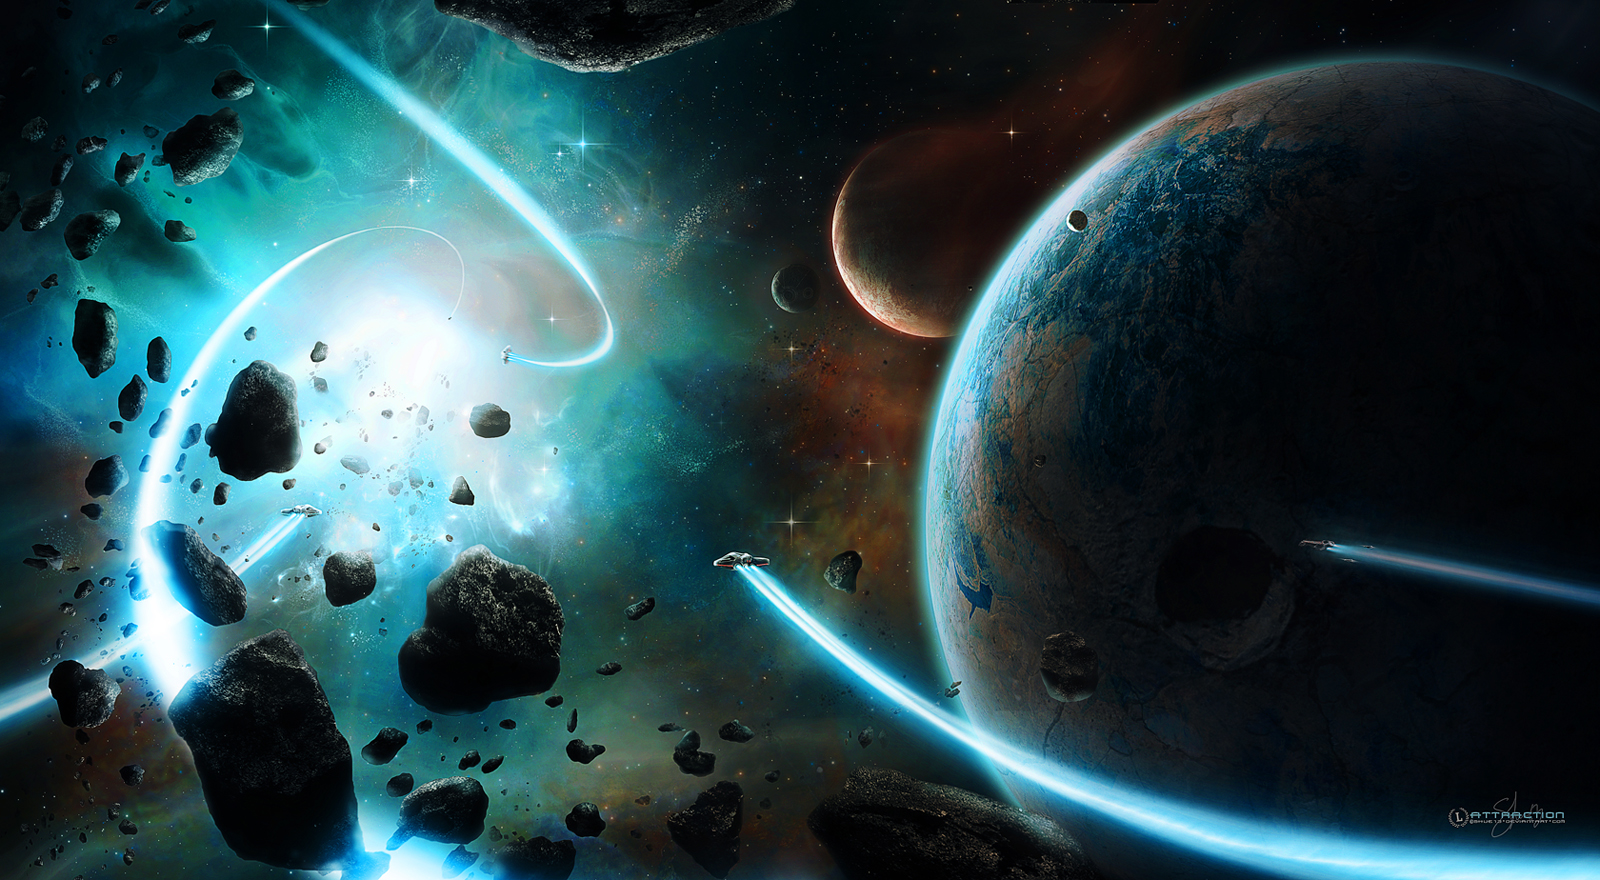 Space Wallpaper And Background Image